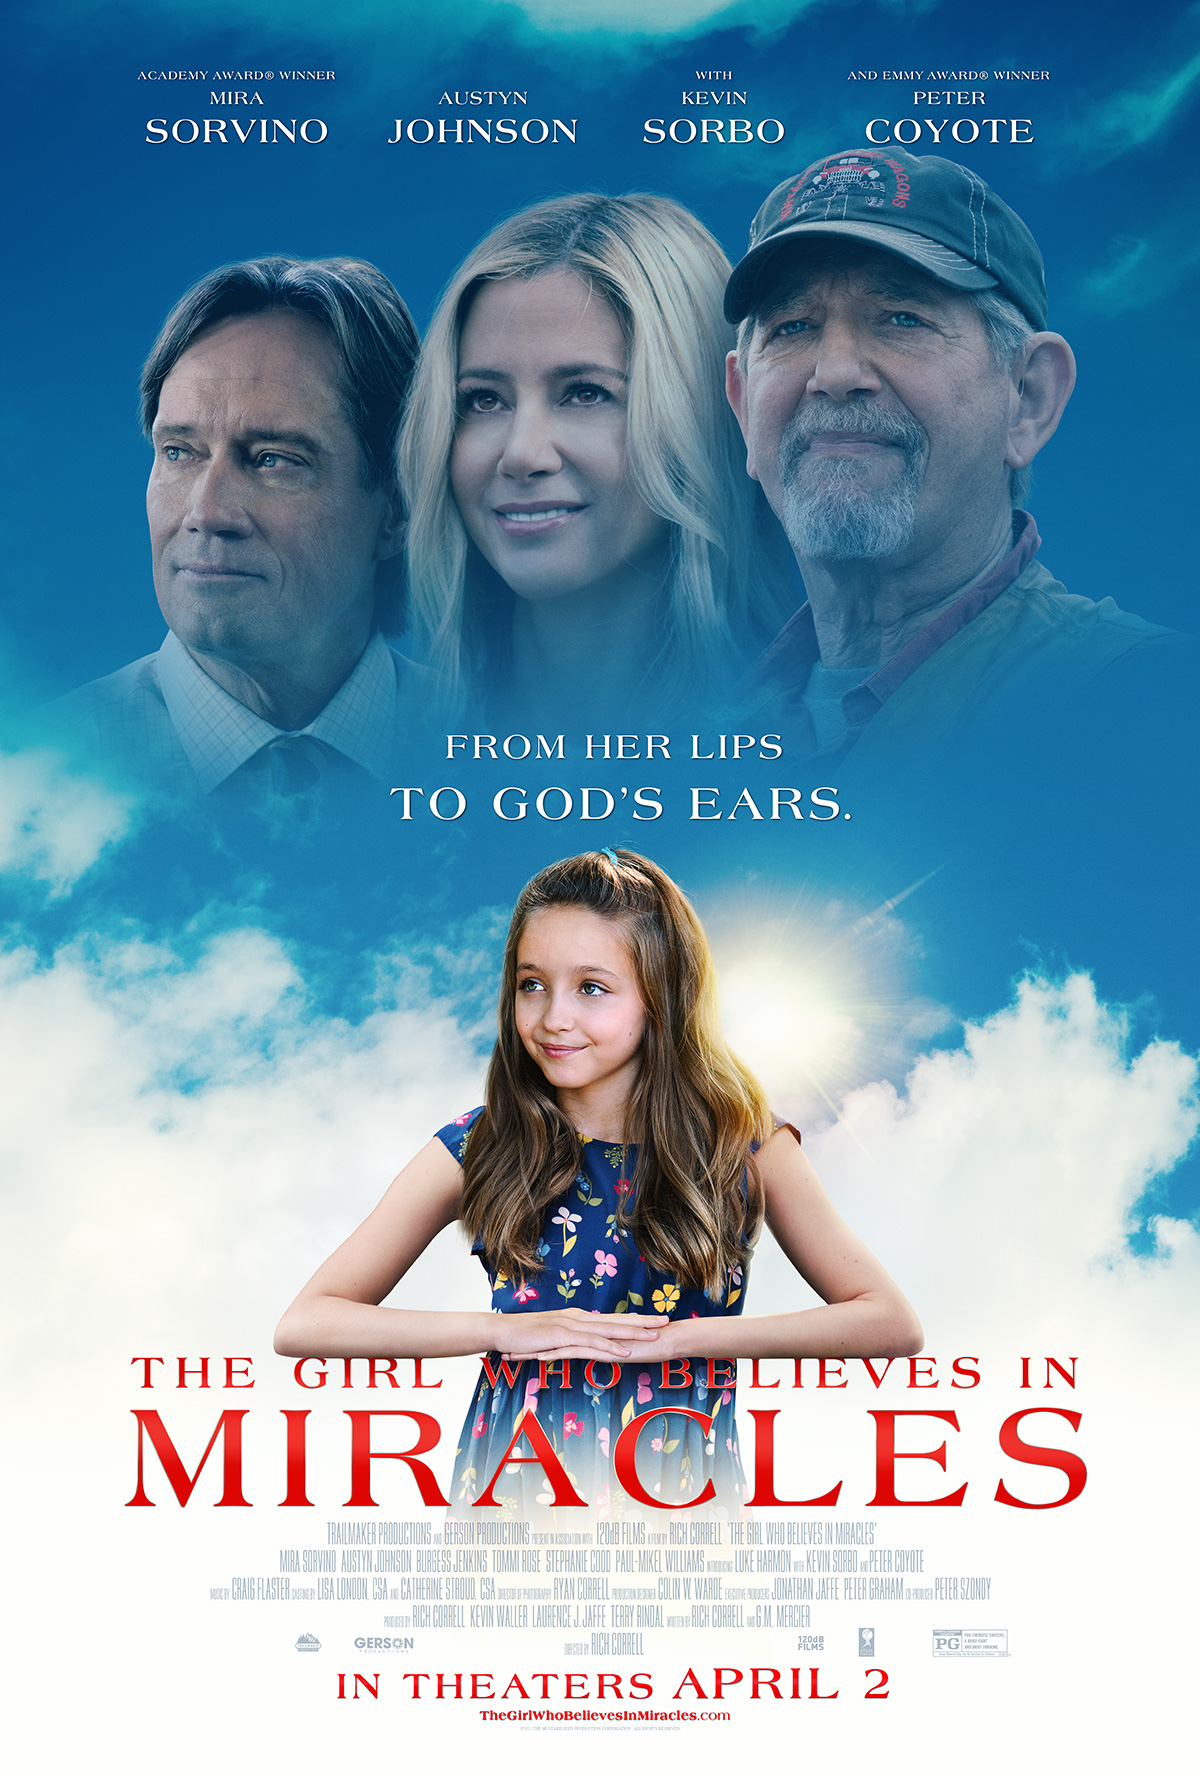 DOWNLOAD MOVIE The Girl Who Believed in Miracles (Free Movie Download)